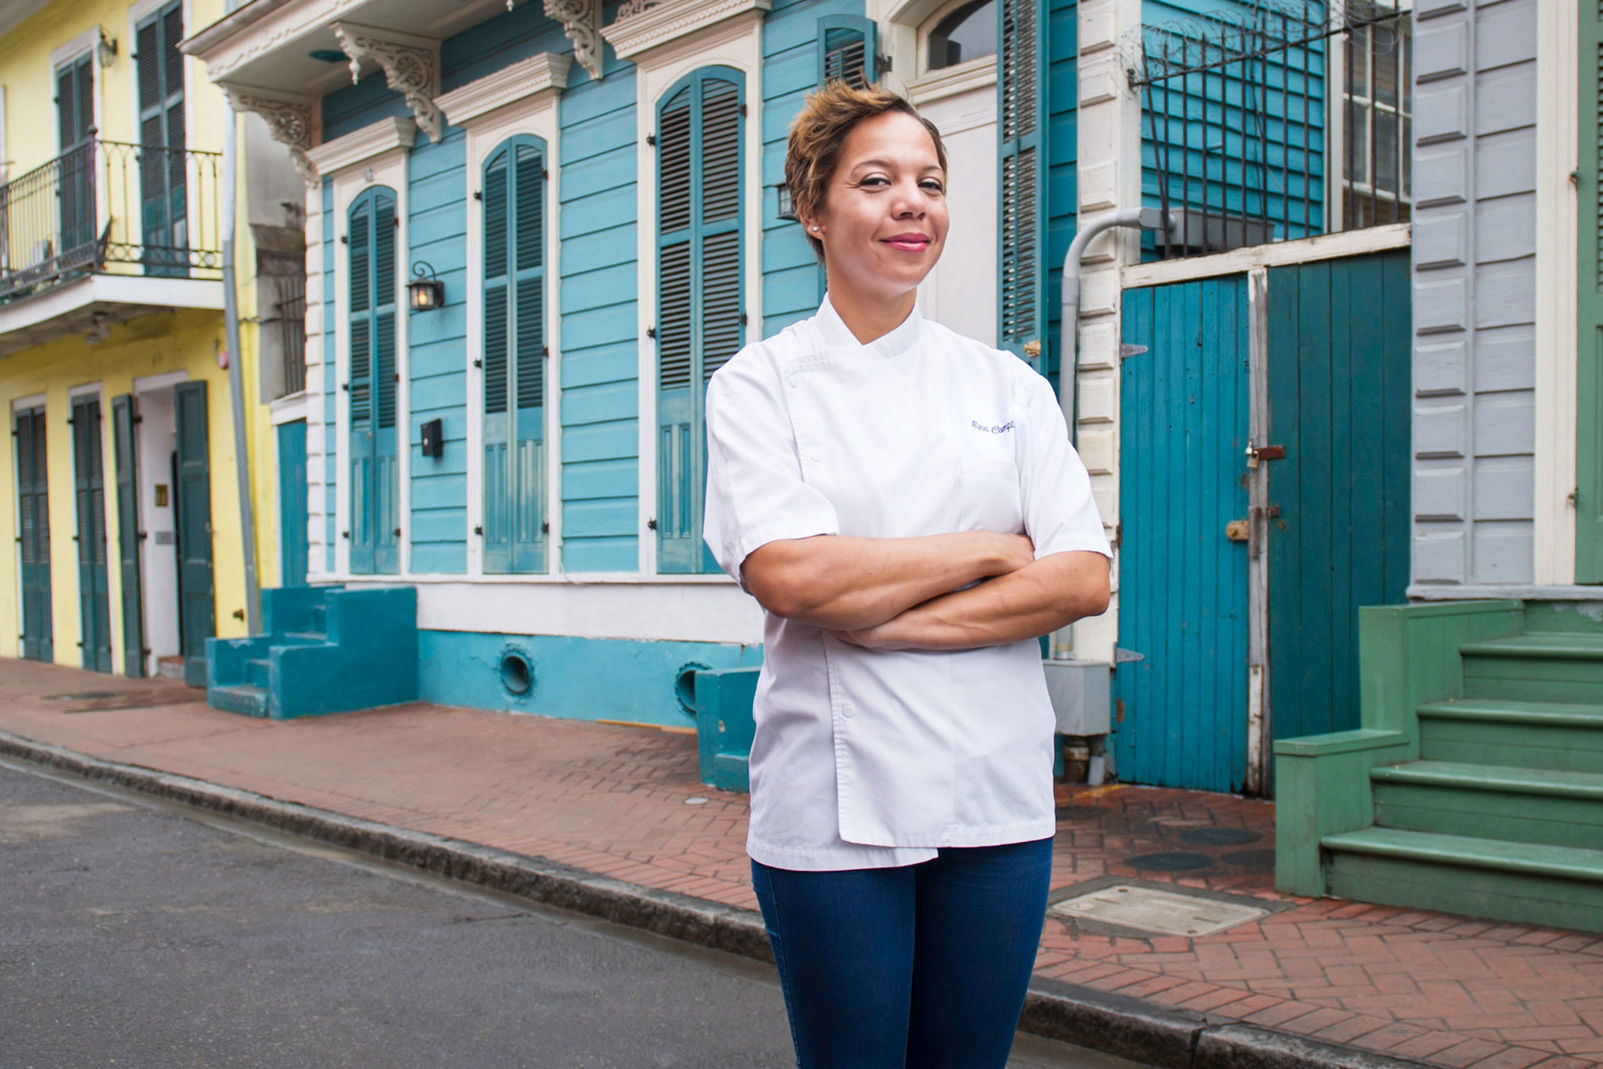 Top Chef Star Nina Compton to Open Her Second Restaurant in New Orleans